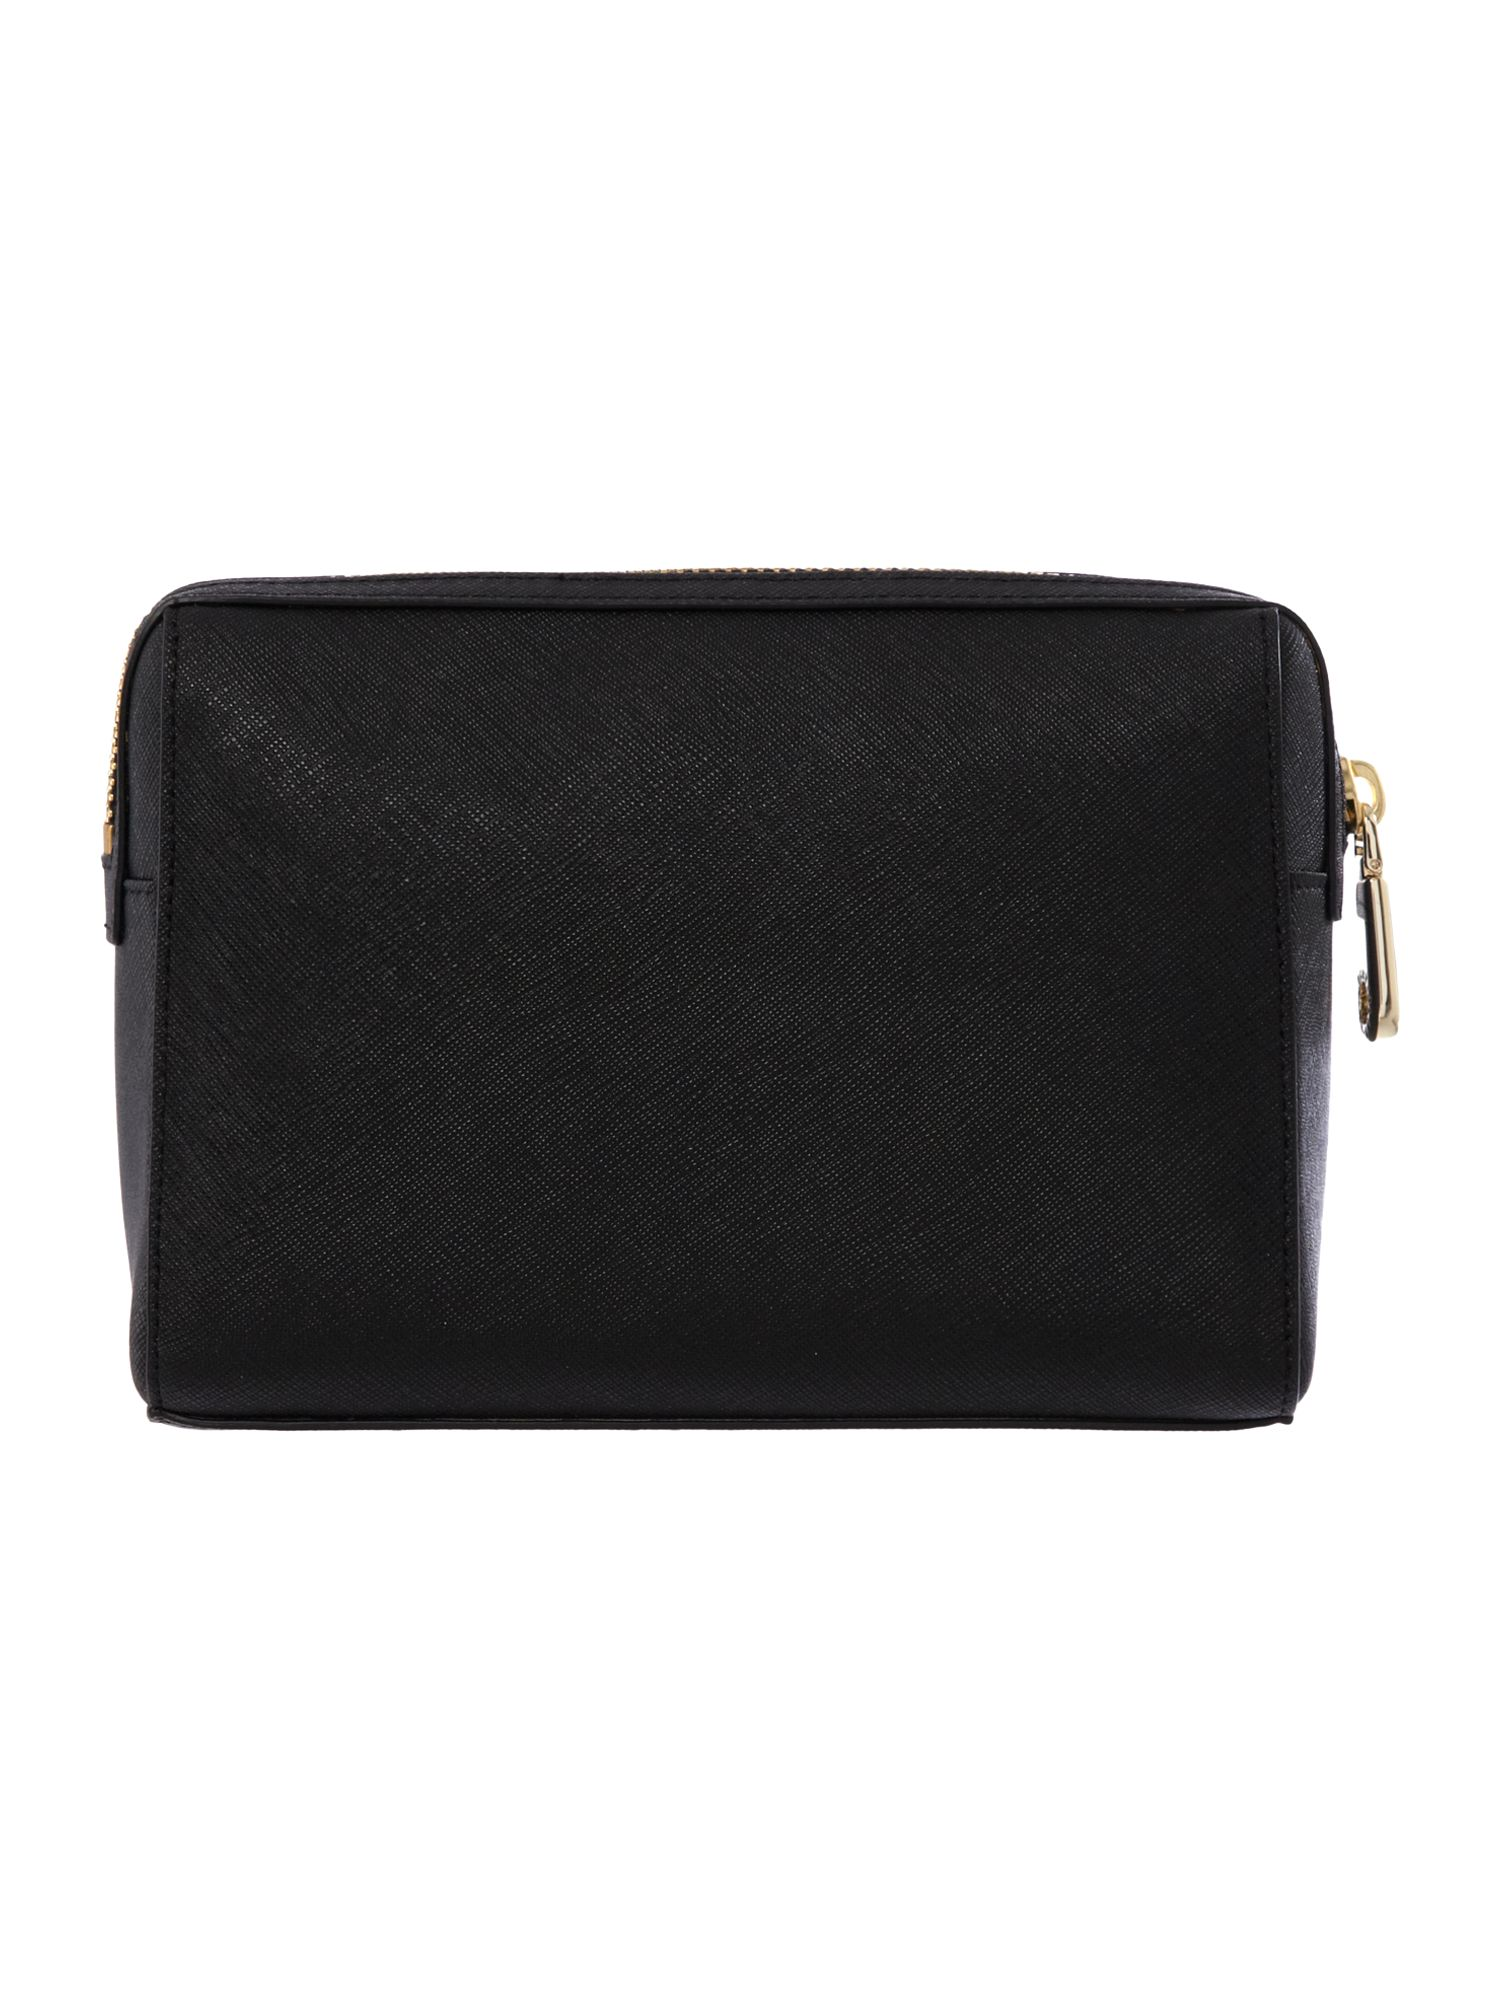 Saffiano black medium cosmetic bag